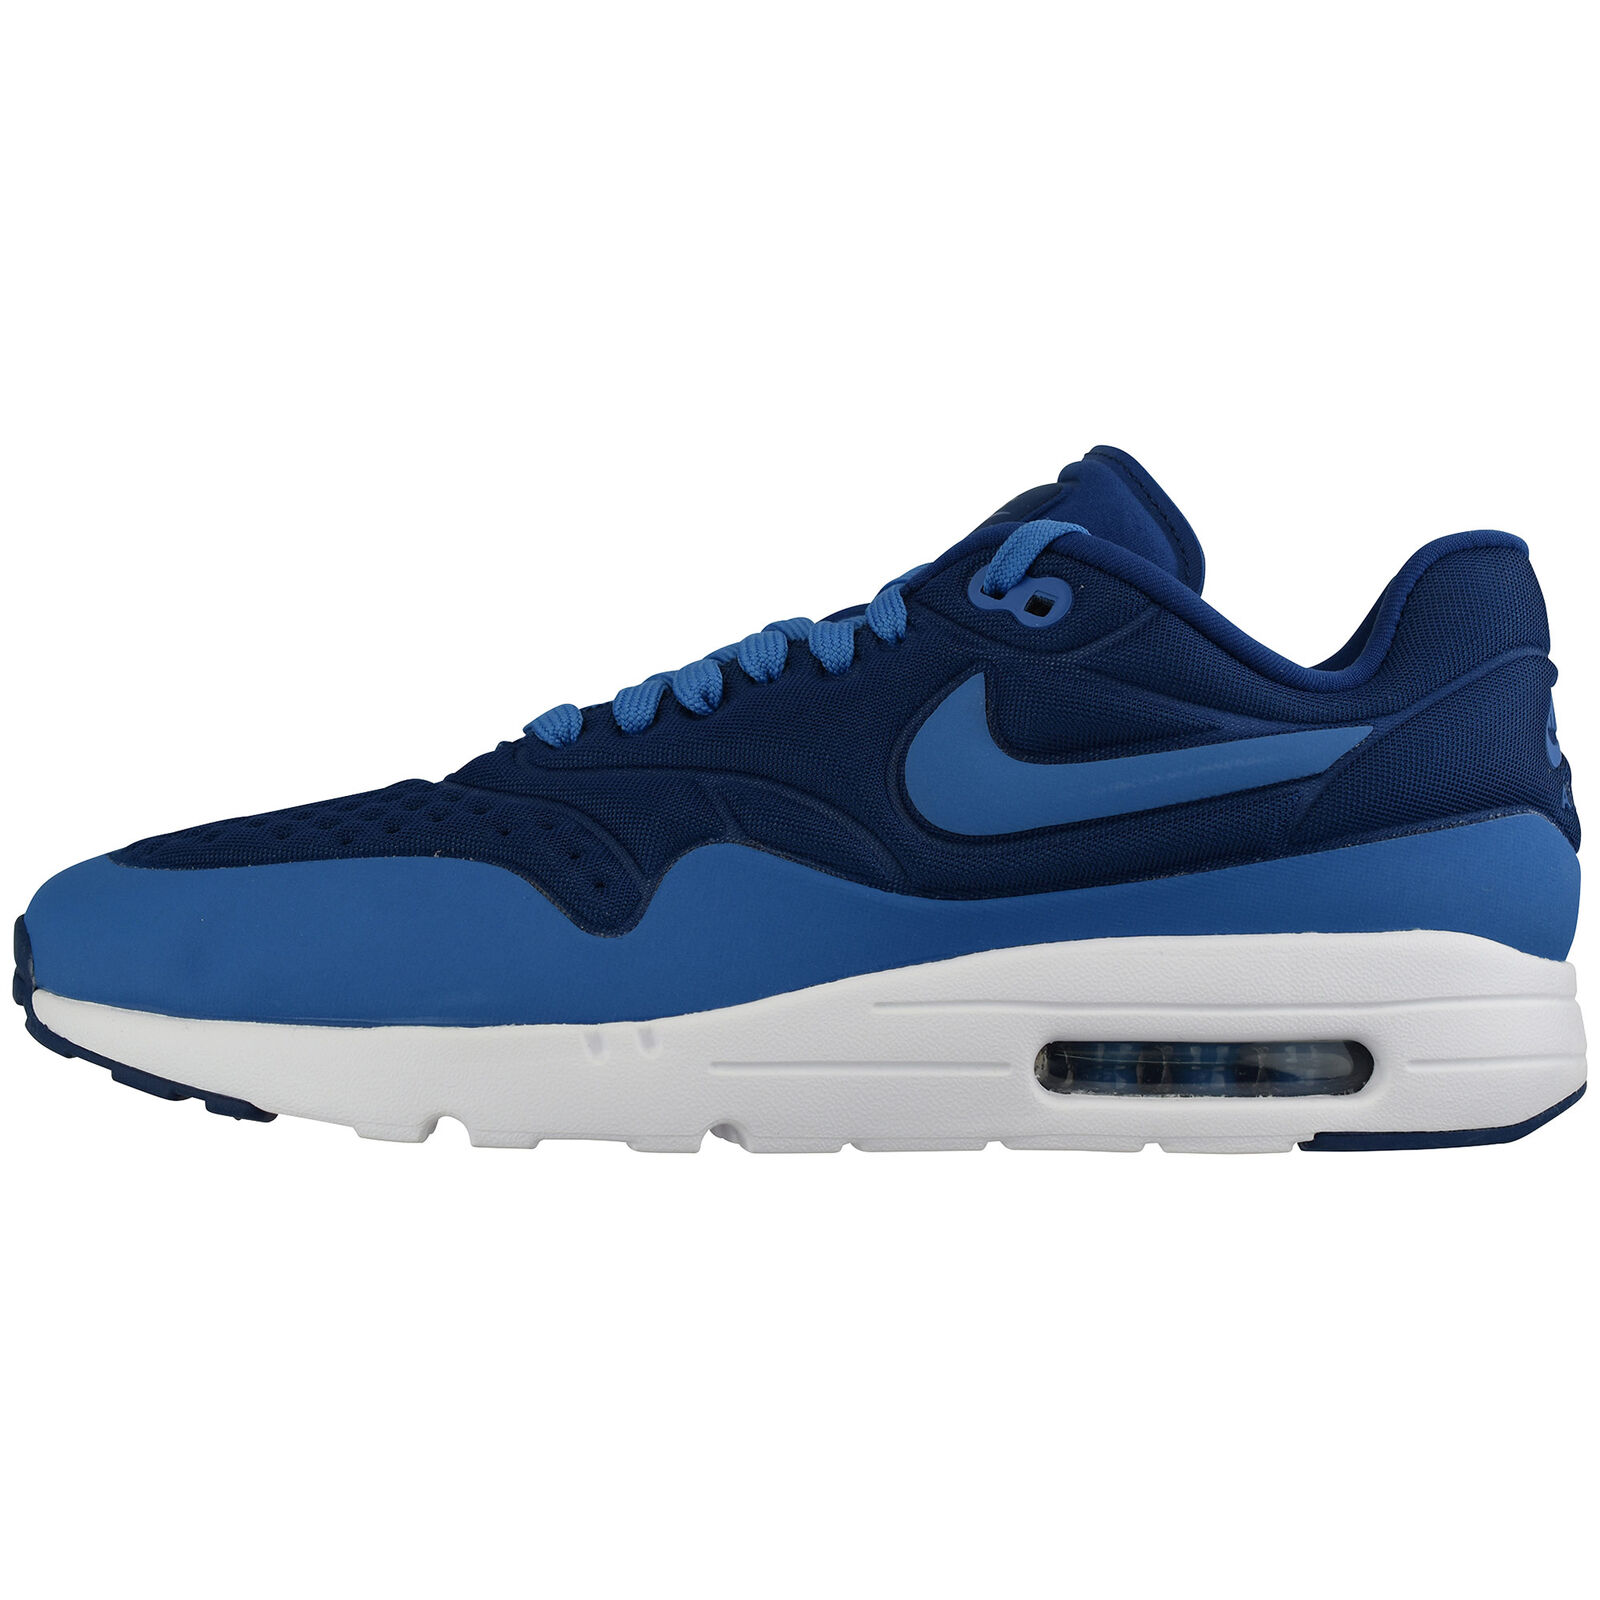 Nike Air Max Bw Ultra Se 845038-400 Lifestyle Running shoes Casual Trainers